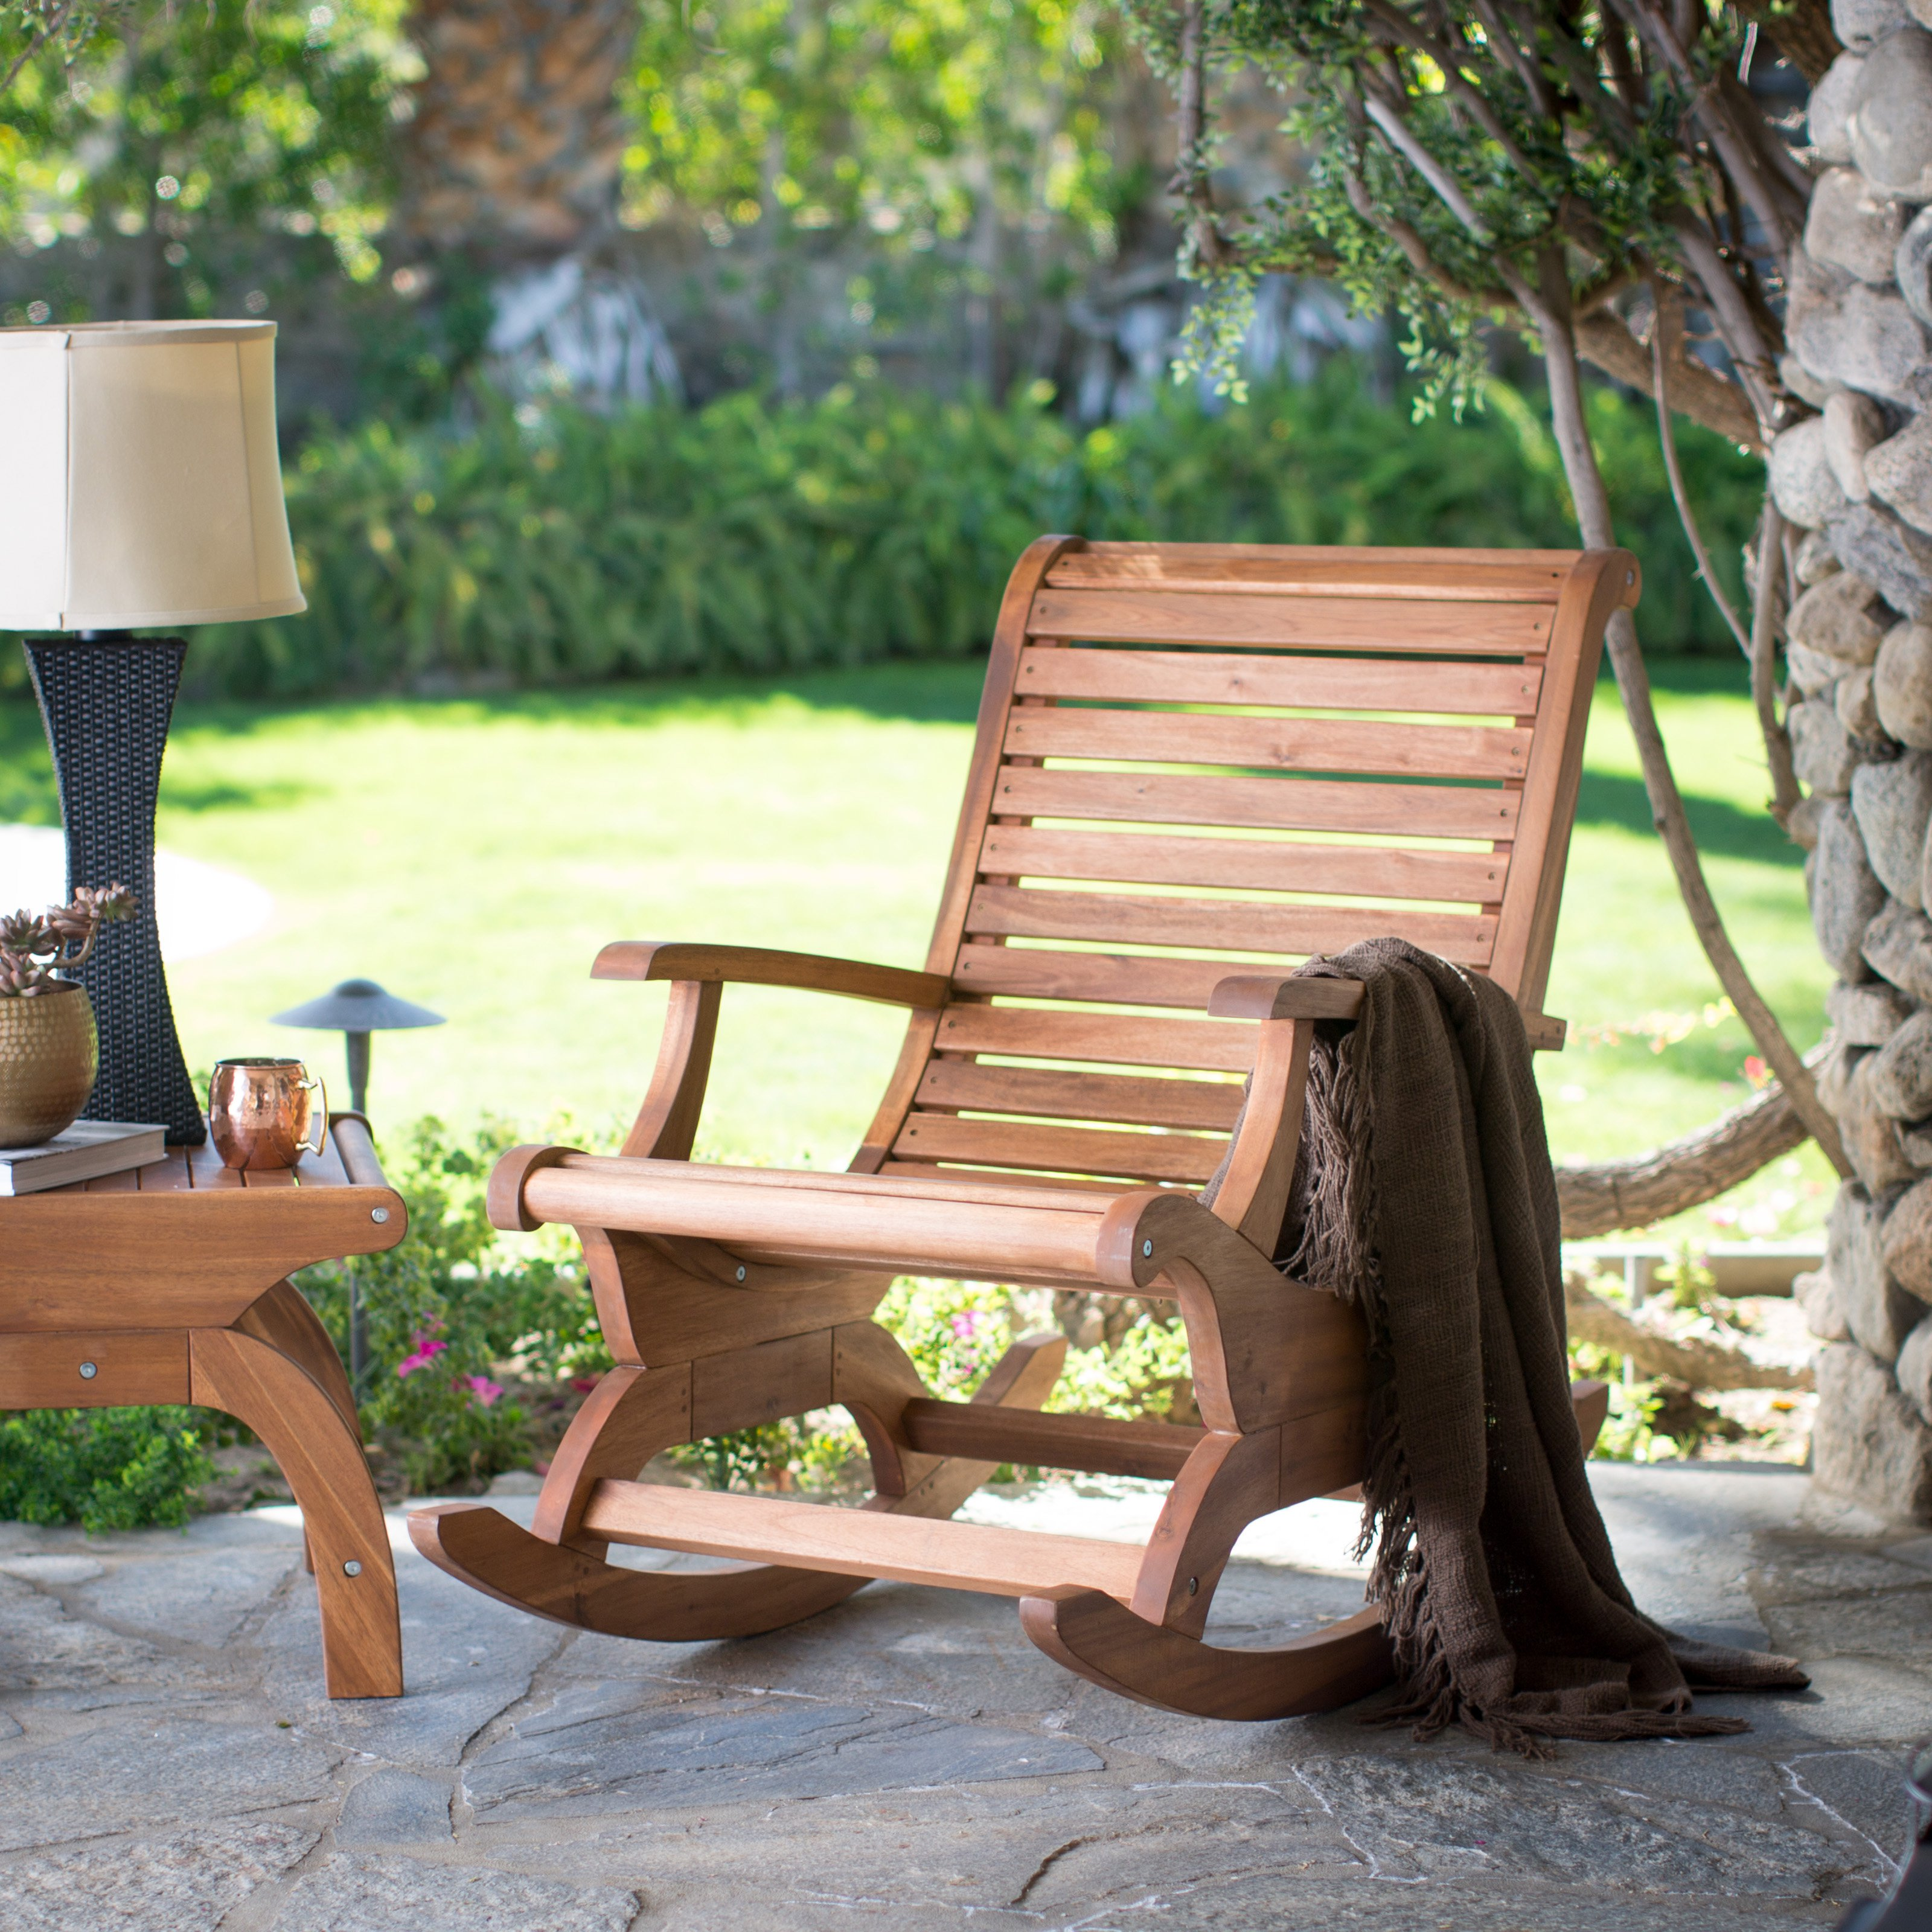 Outdoor Rocking Chair : time to relax